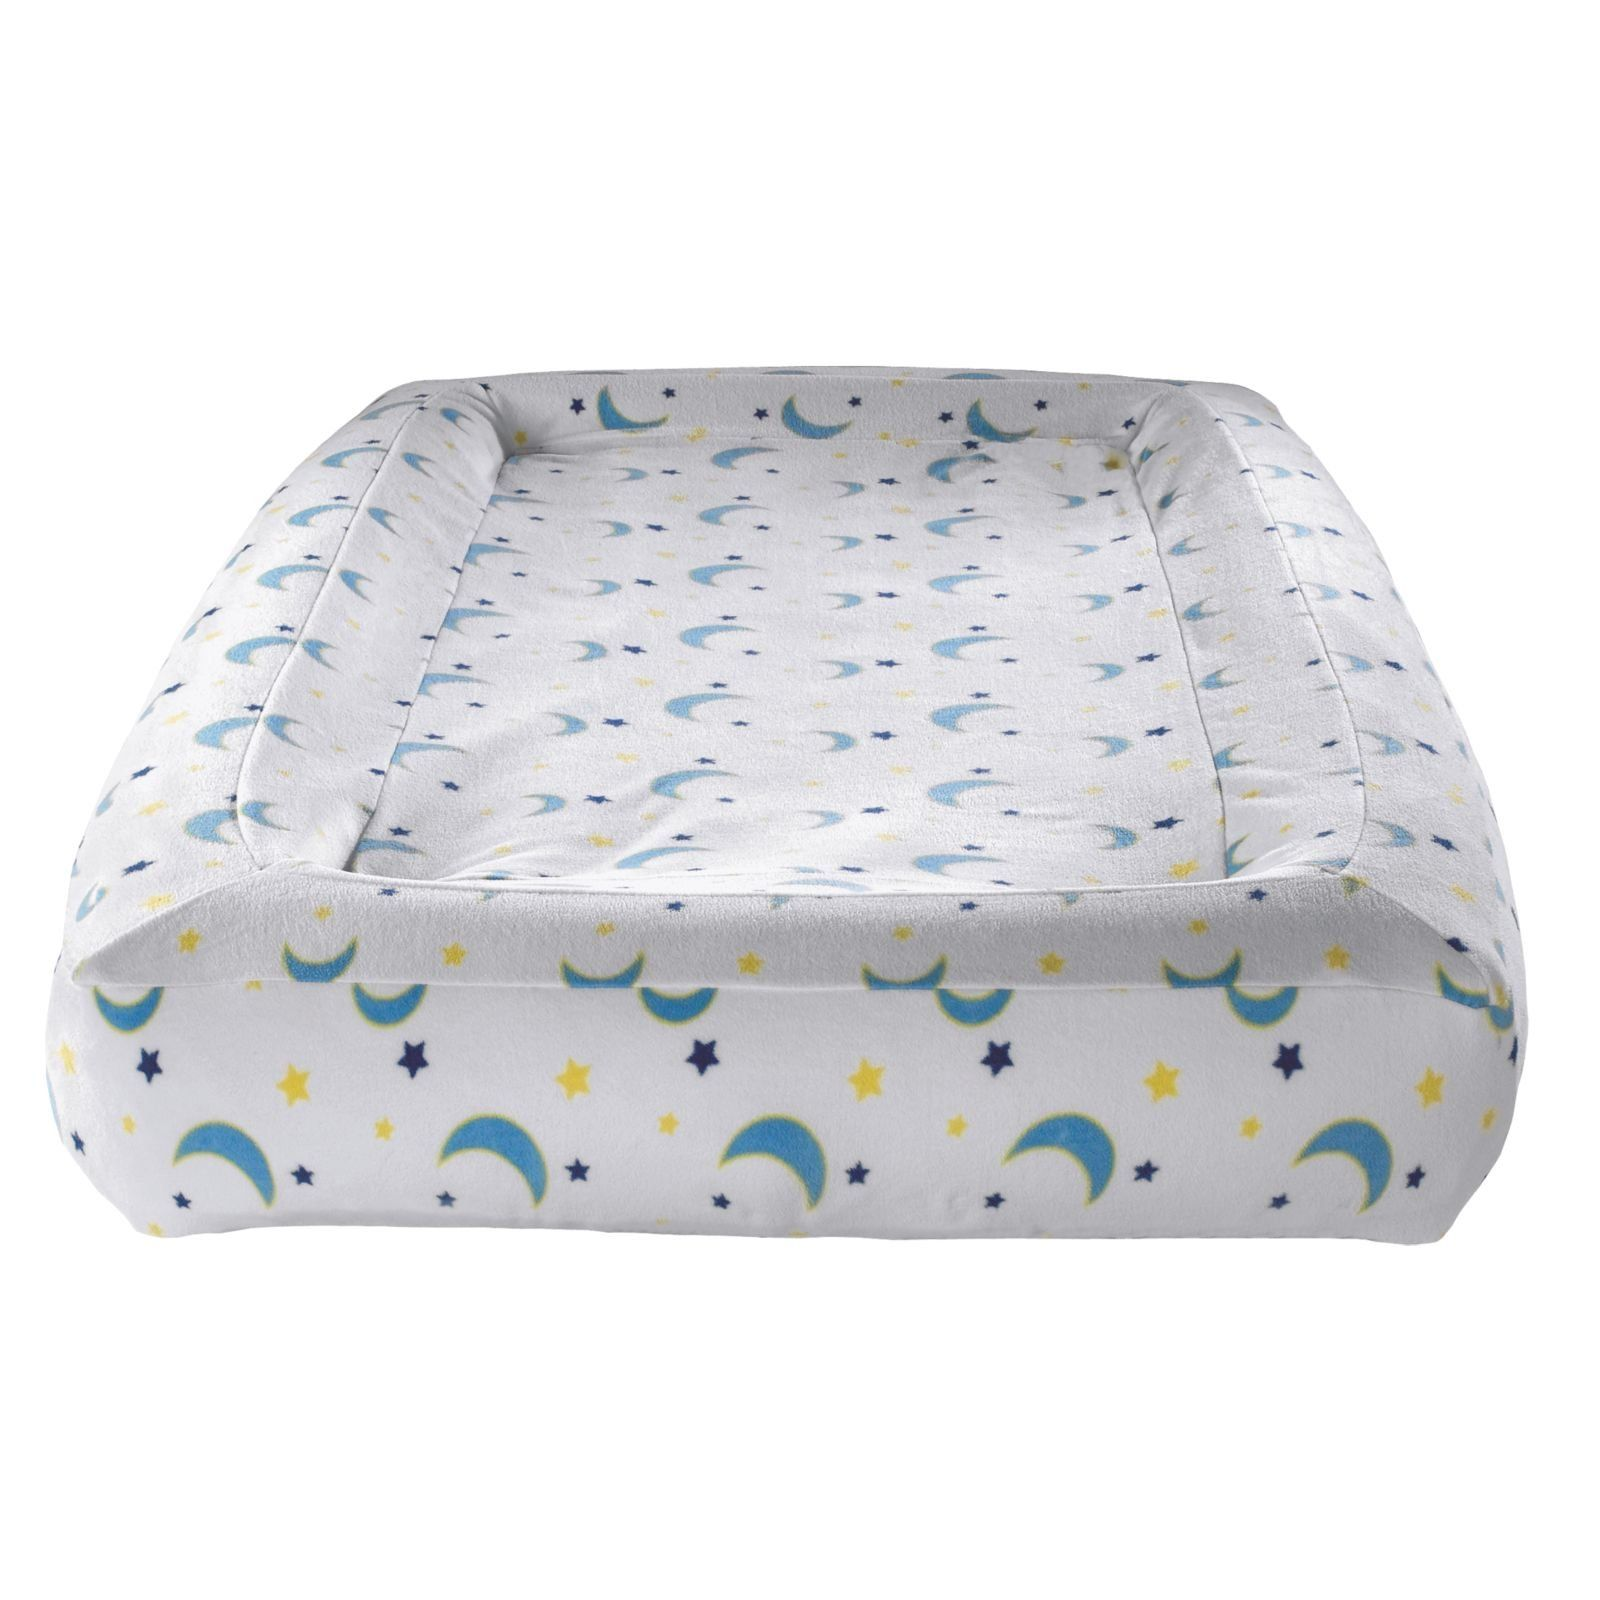 AeroBed Air Mattress for Kids *** You can find even more